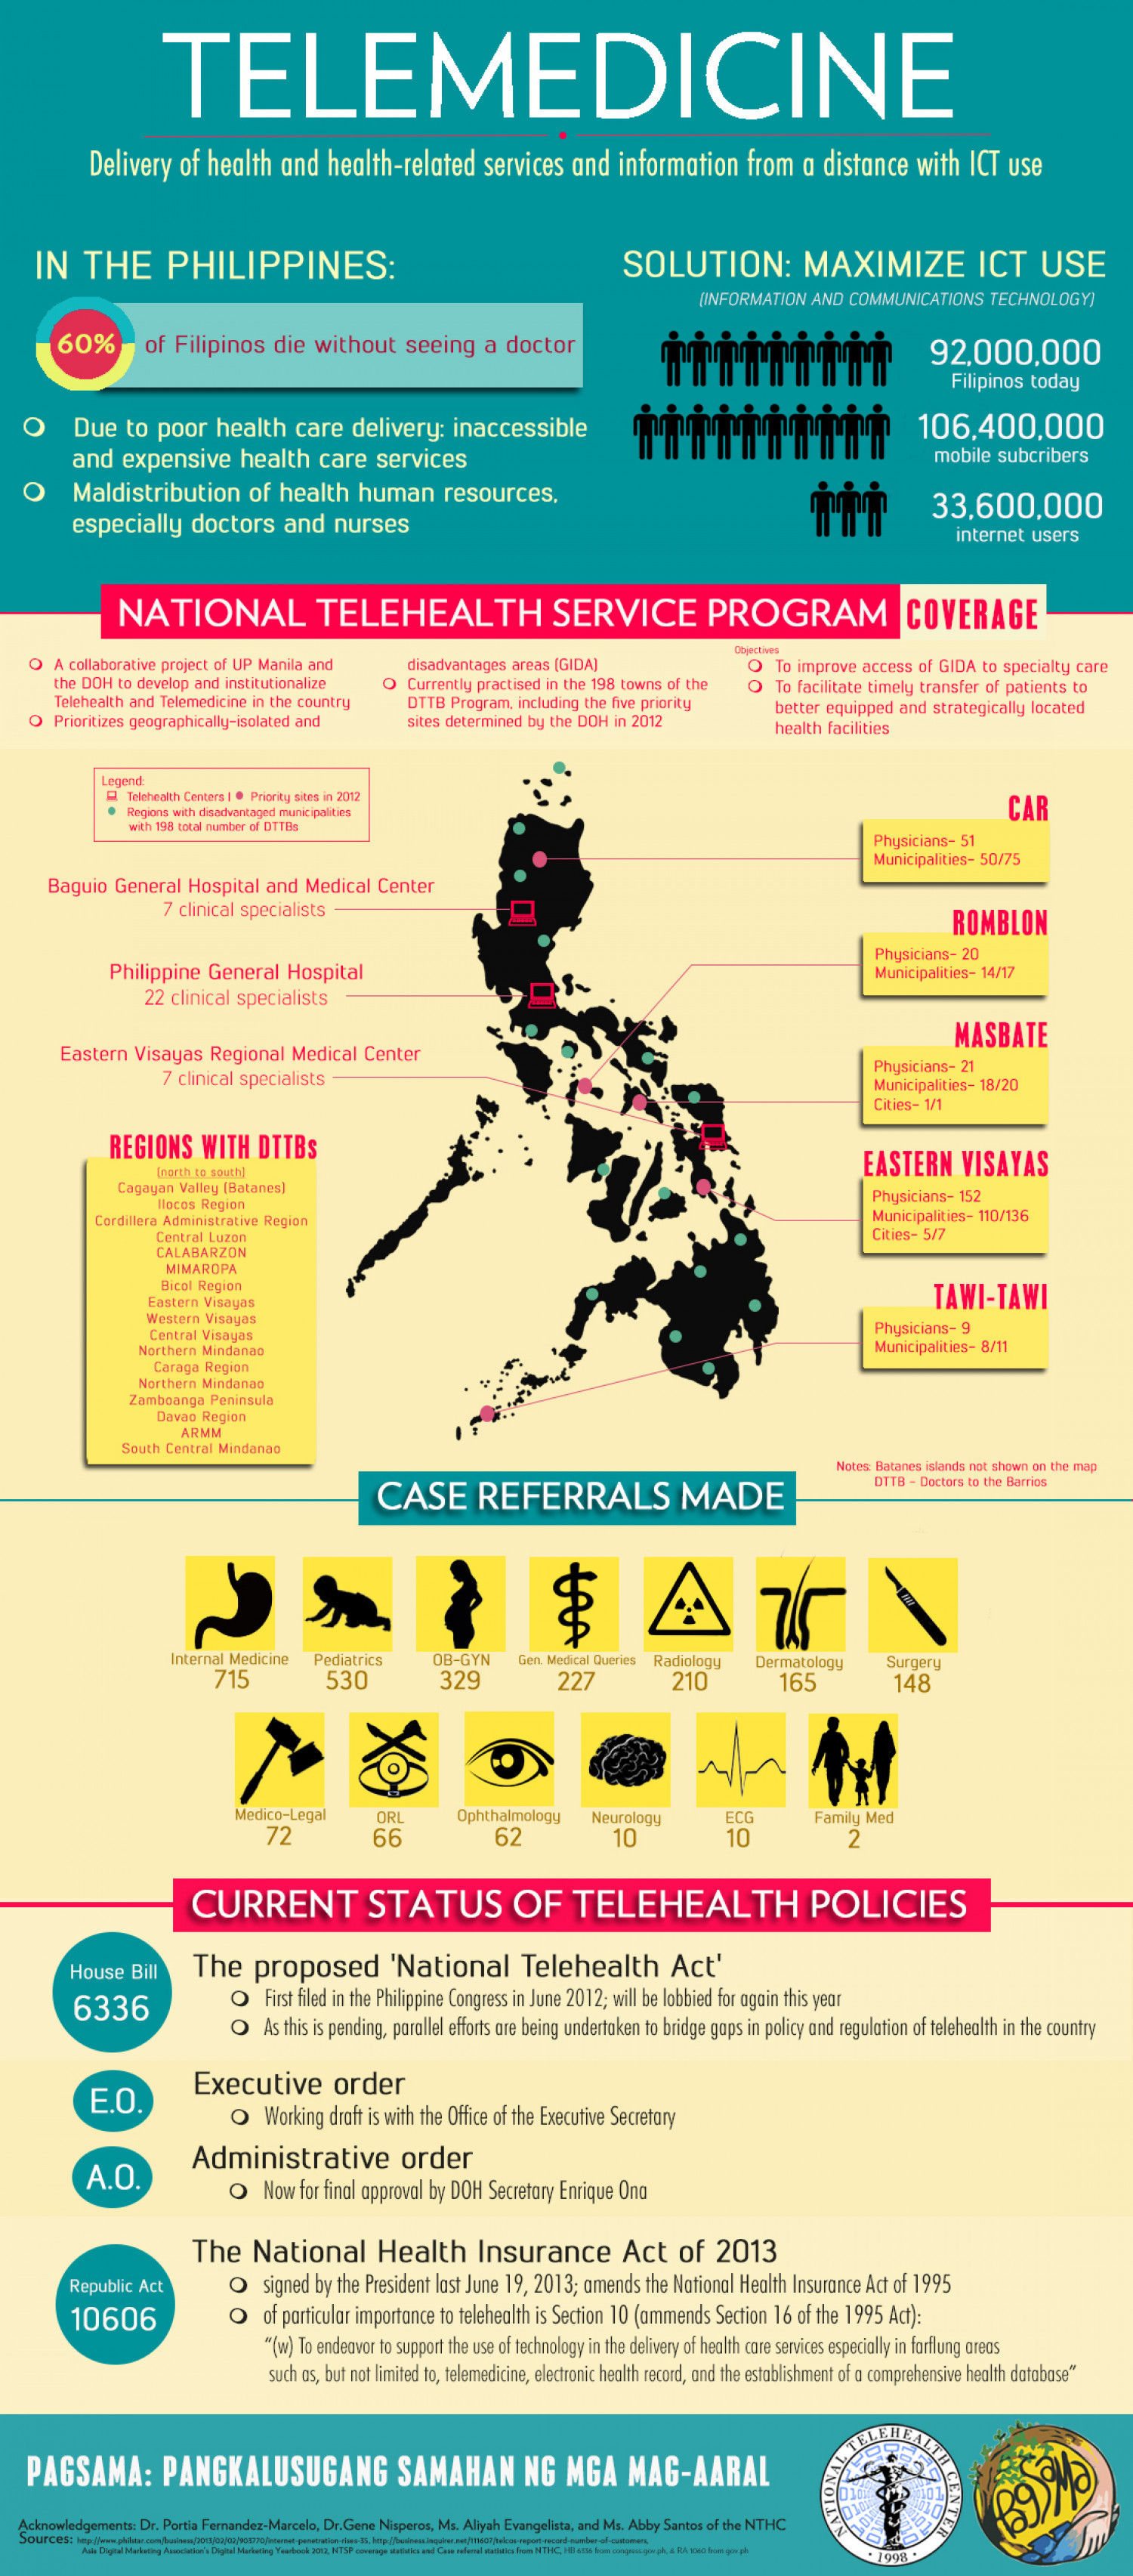 [PAGSAMA] Telemedicine in the Philippines Infographic